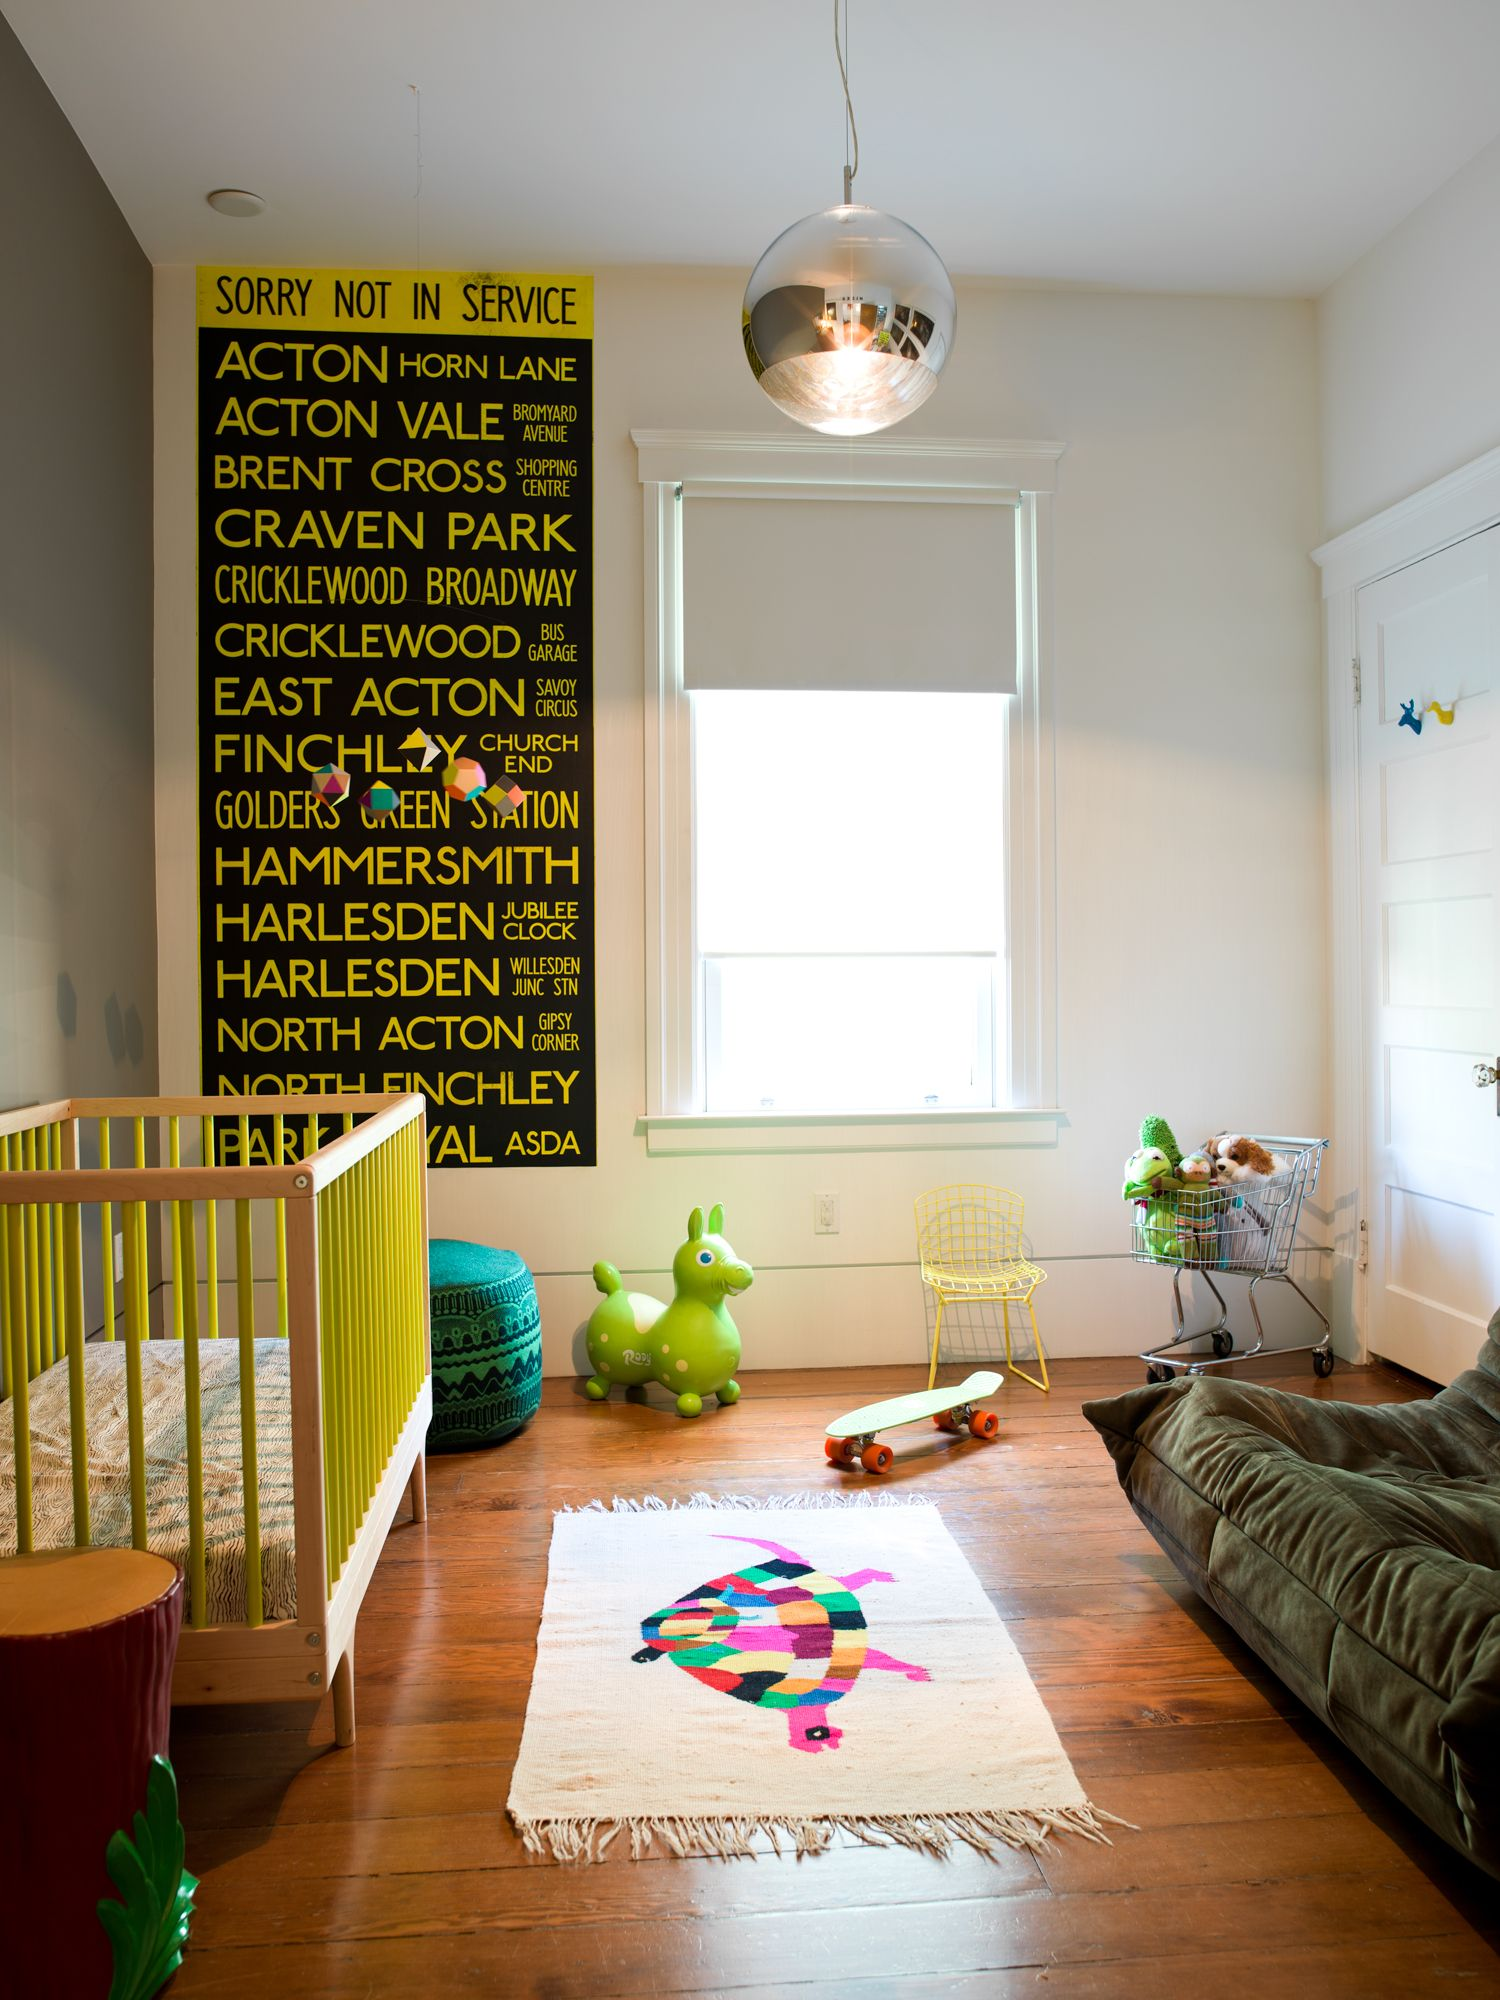 Nickos Room in Los Angeles with our YELLOW CARAVAN CRIB. Photo by Jason Madera. #kalon